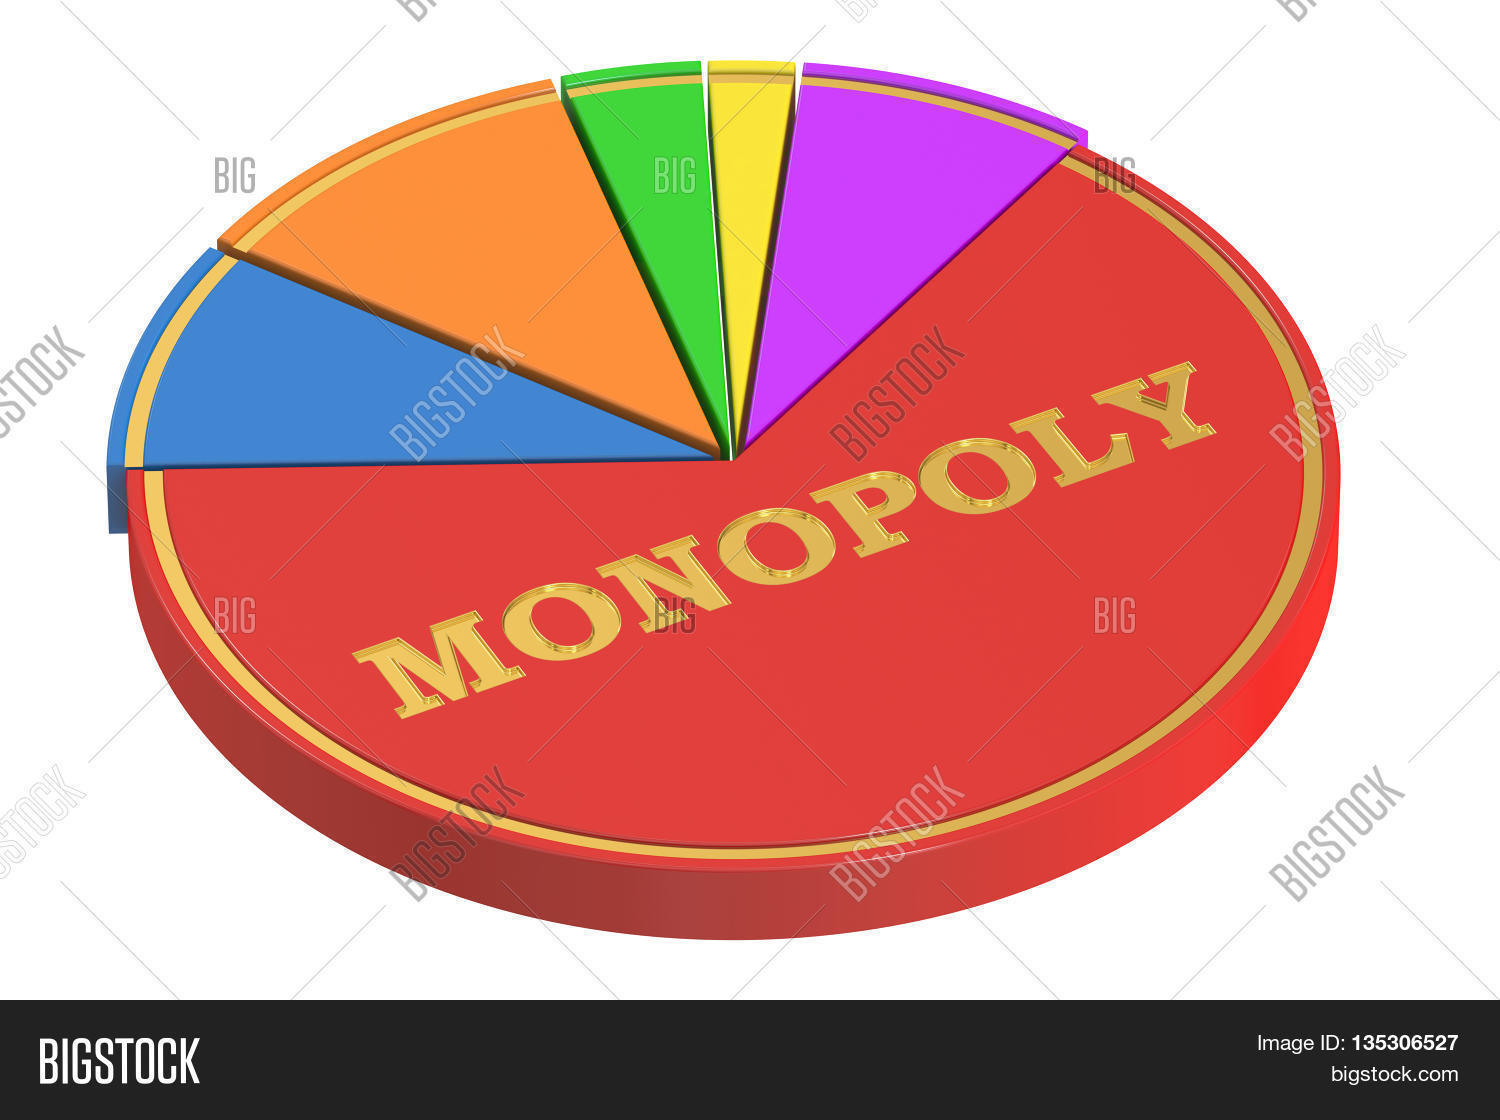 Monopoly concept pie chart 3d image photo bigstock monopoly concept with pie chart 3d rendering isolated on white background nvjuhfo Choice Image